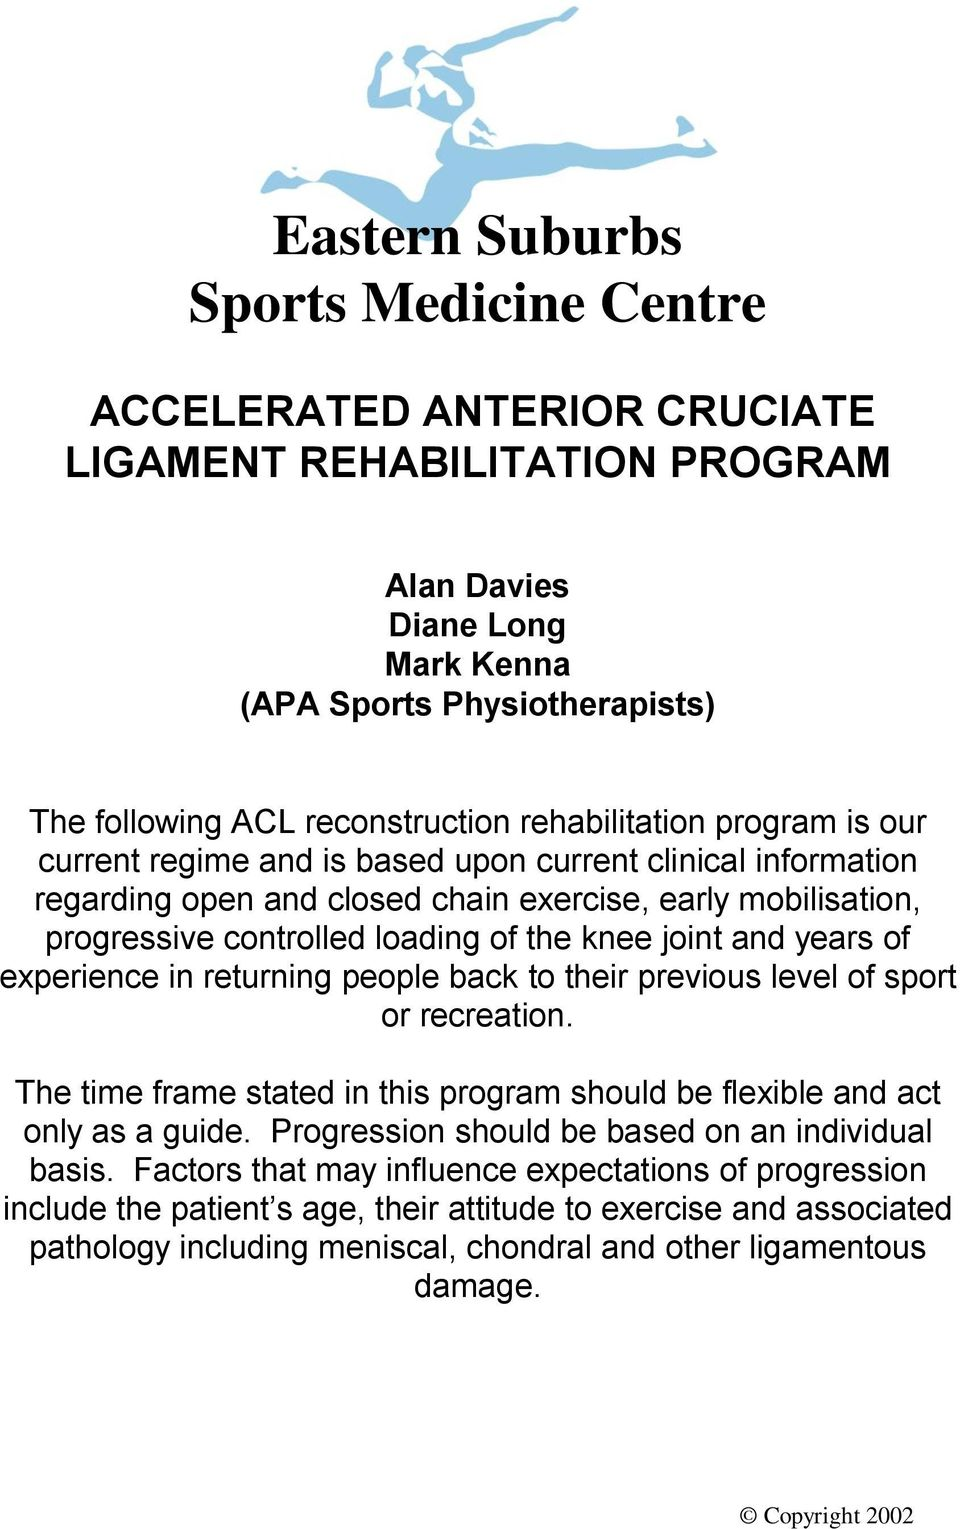 joint and years of experience in returning people back to their previous level of sport or recreation. The time frame stated in this program should be flexible and act only as a guide.